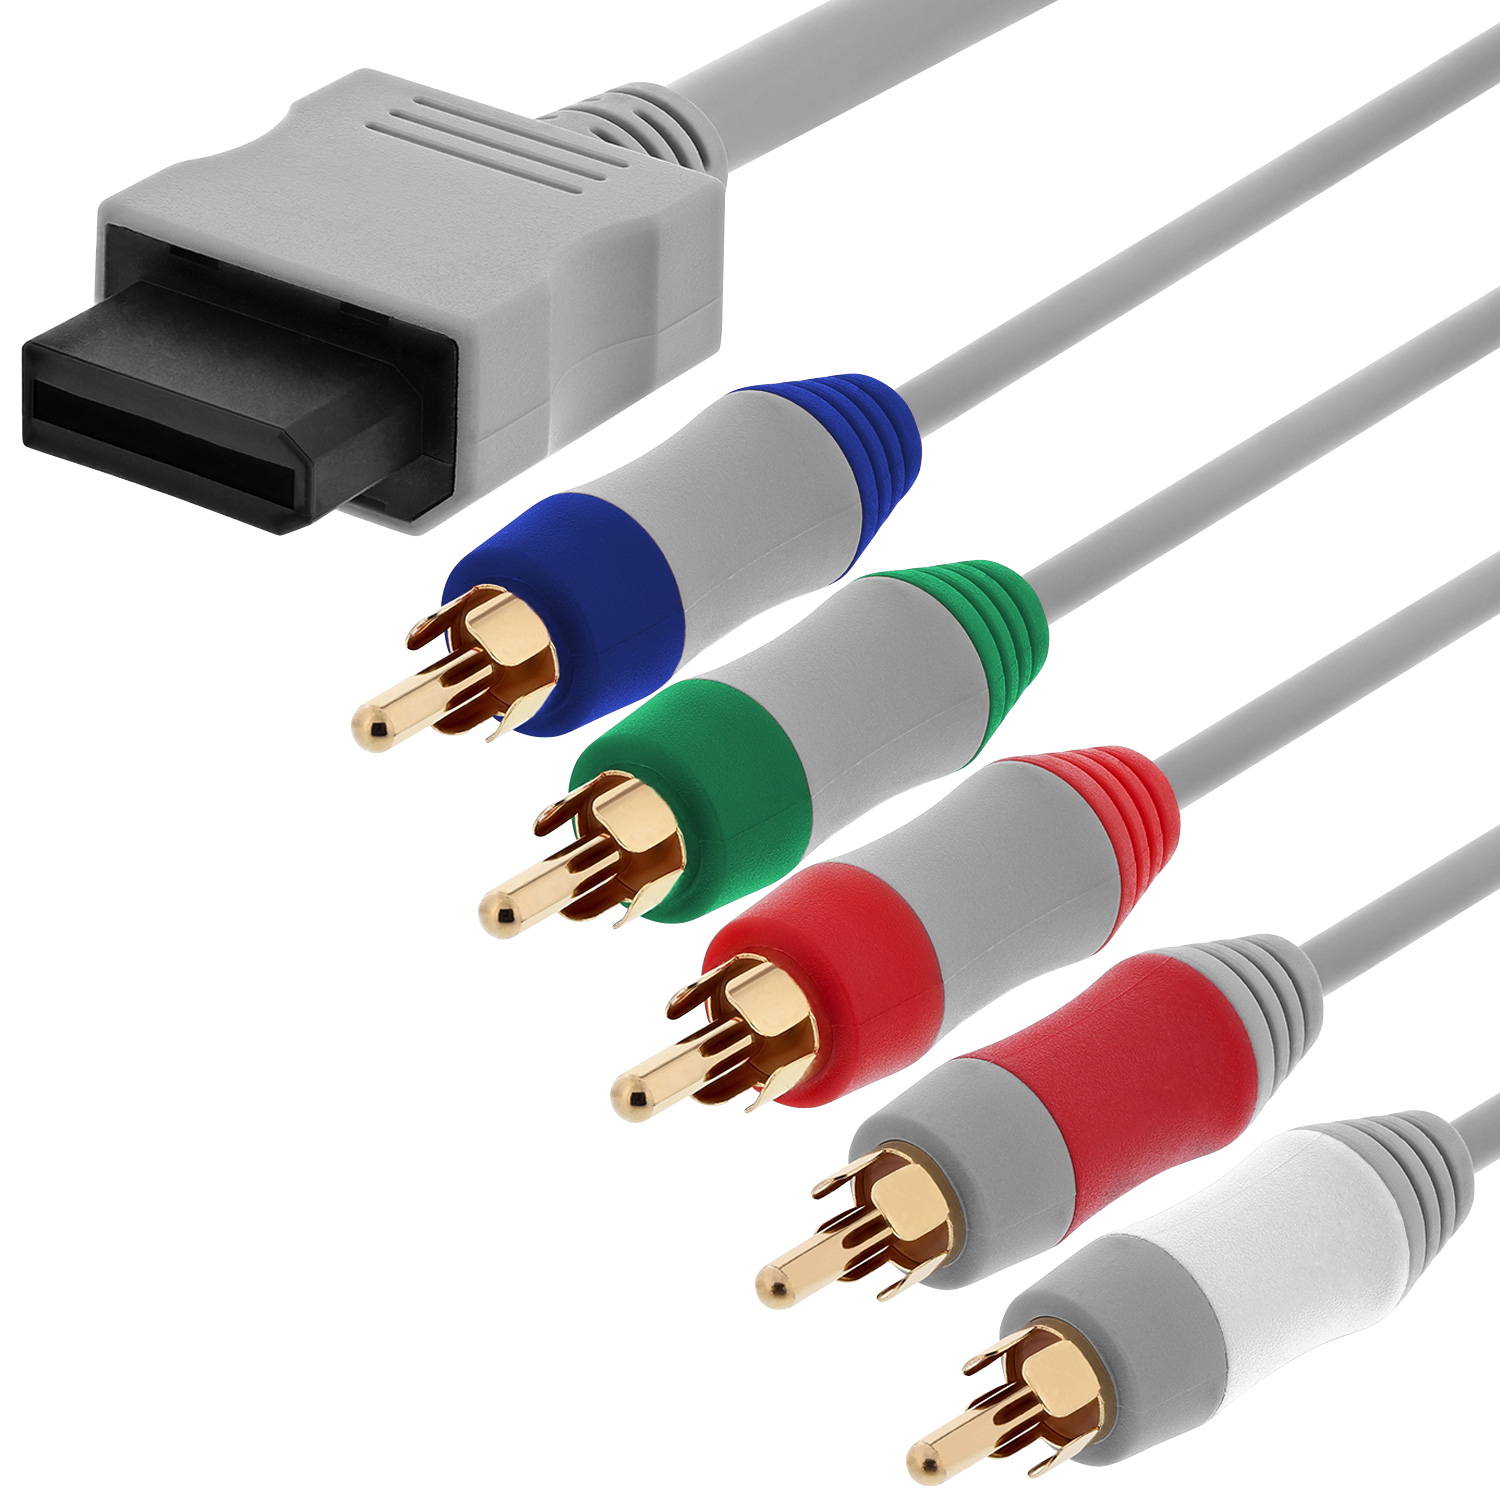 Fosmon Component HD AV Cable to HDTV/EDTV for Nintendo Wii & Wii U